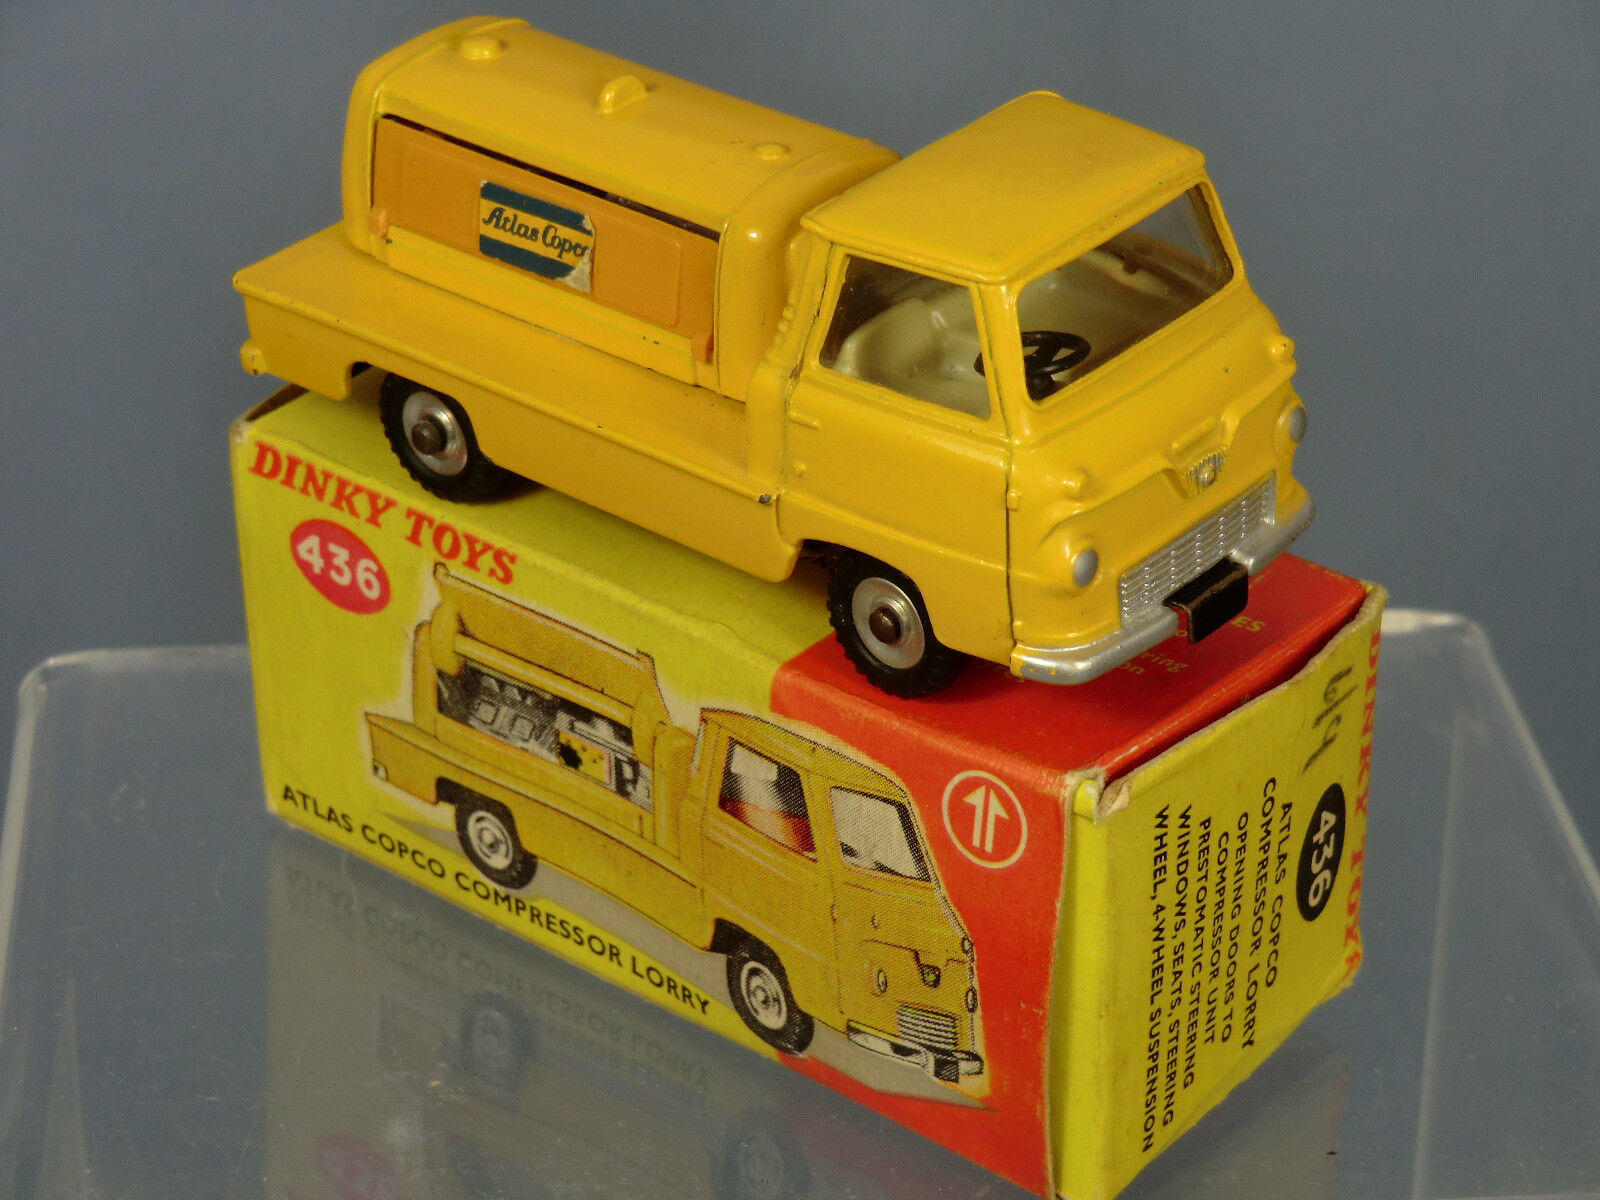 DINKY TOYS MODEL No.436 ATLAS COPCO COMPRESSOR LORRY   VN MIB